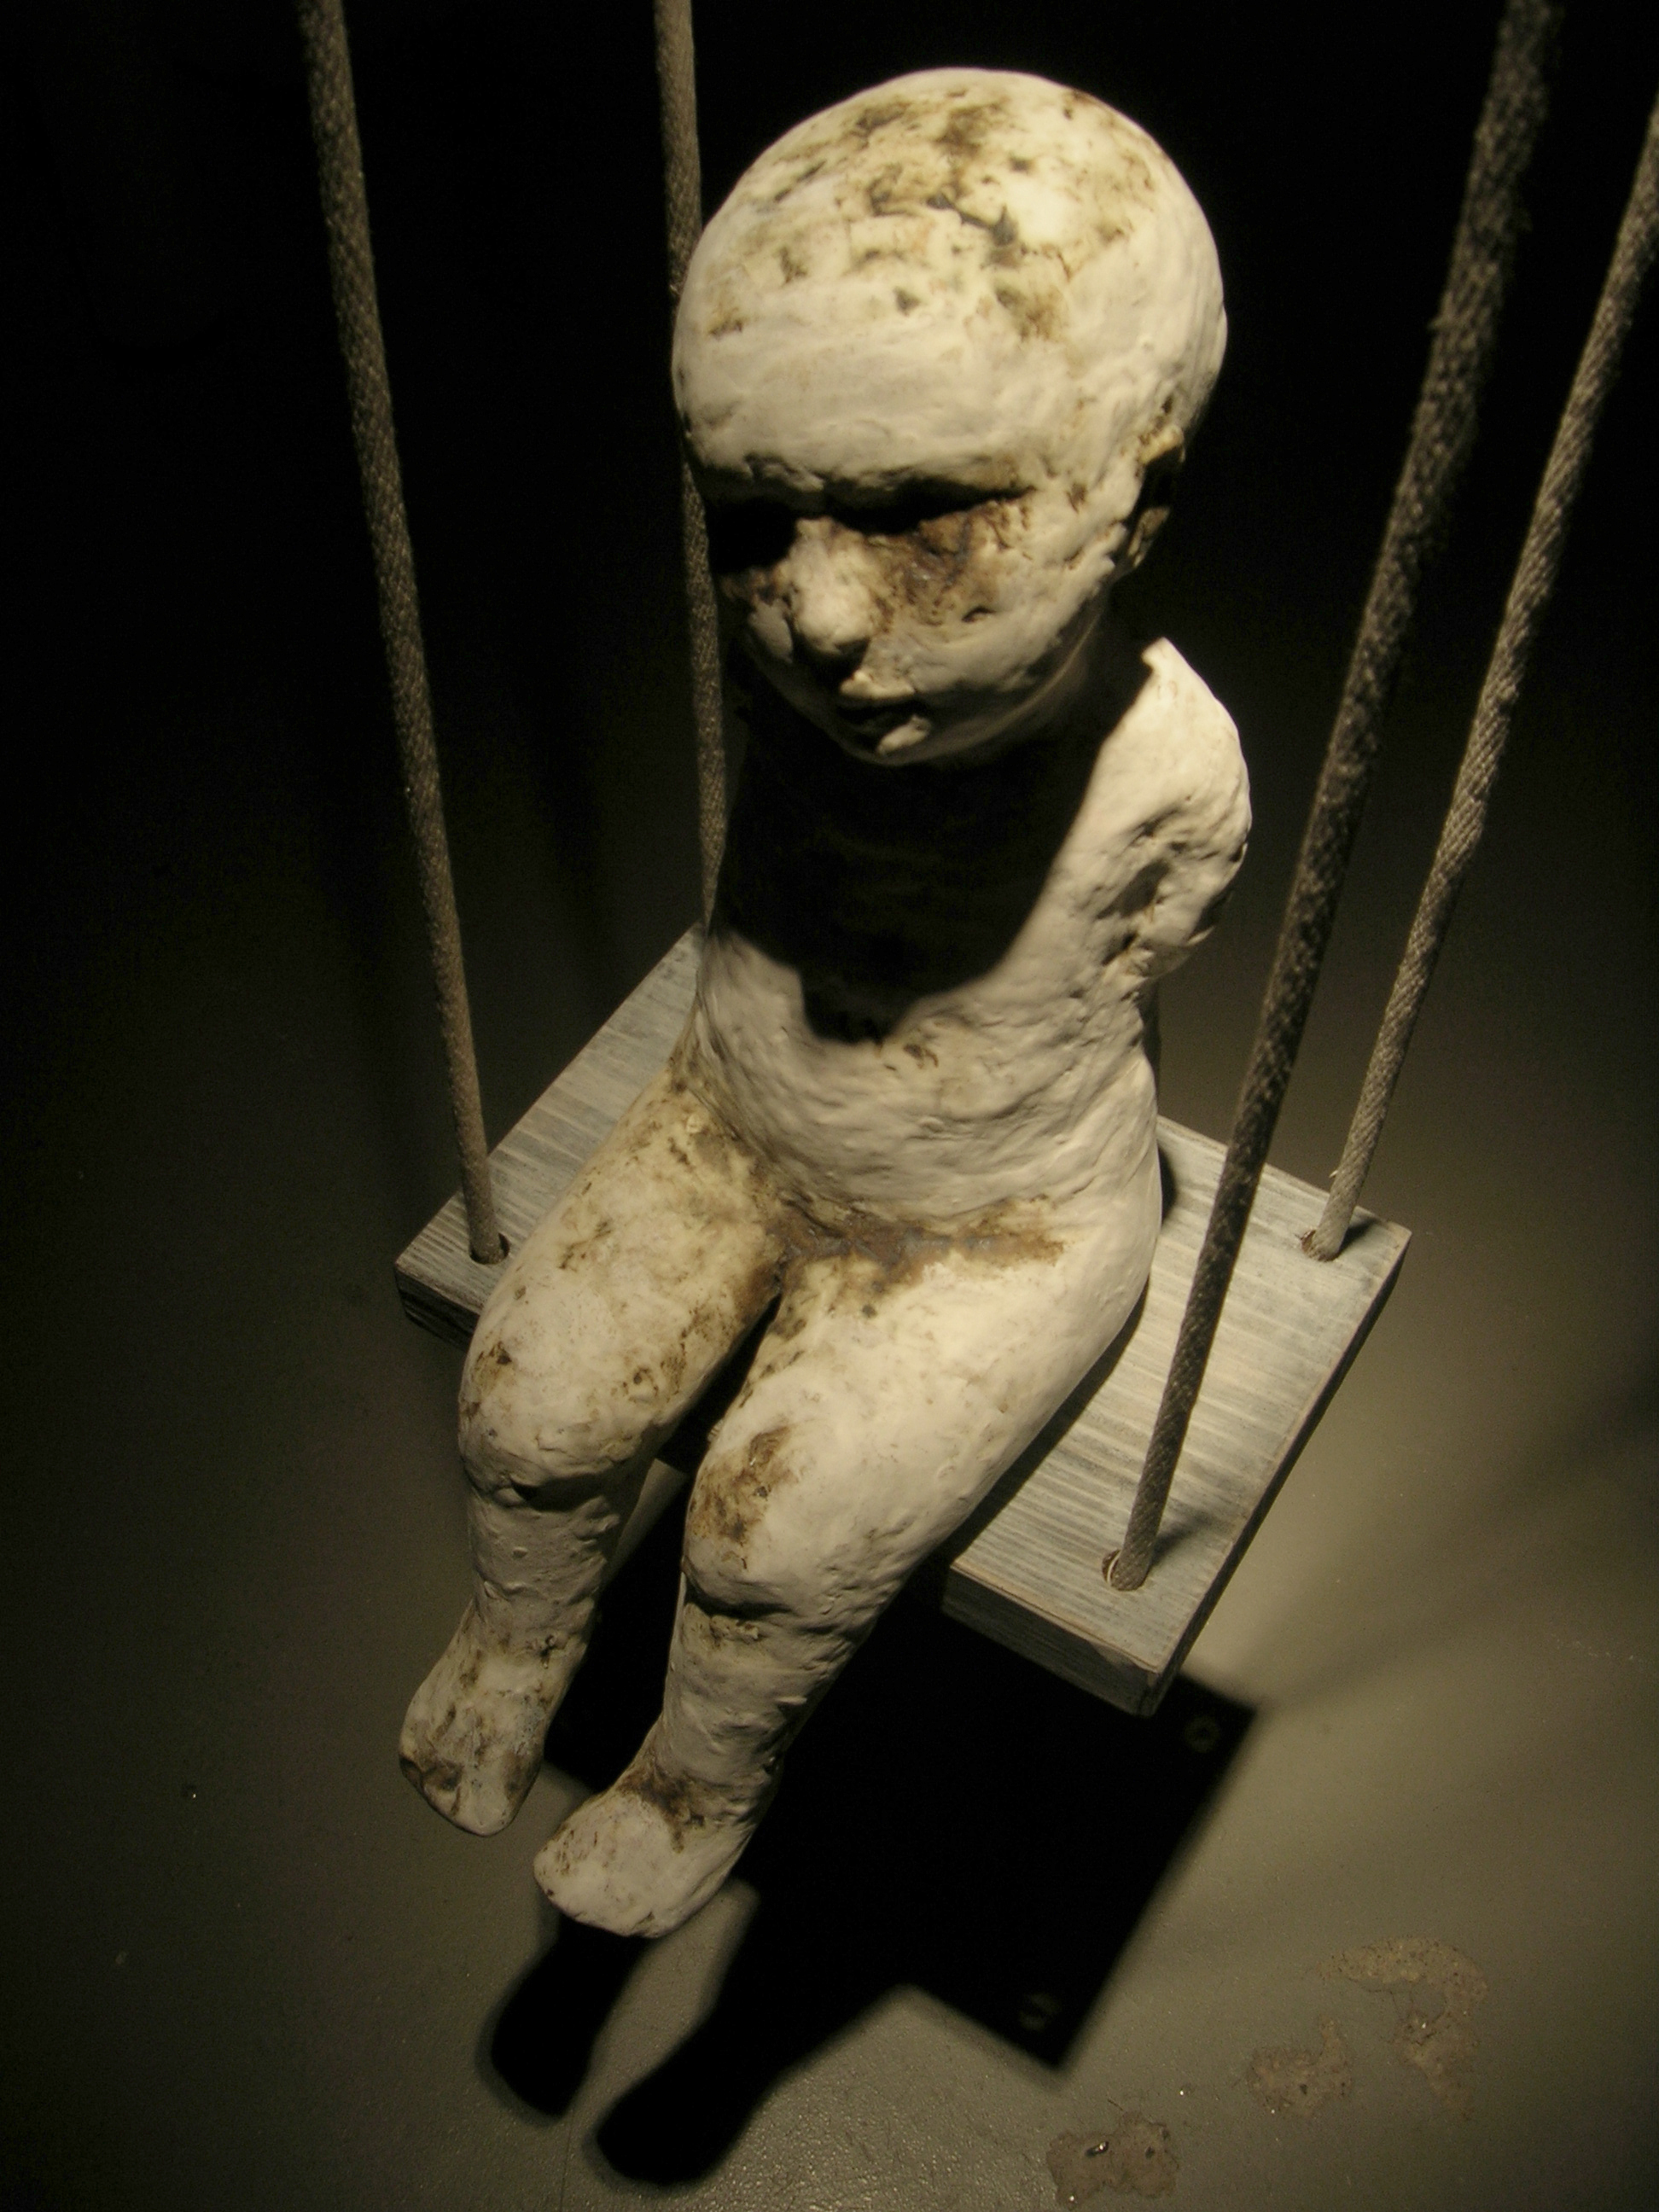 Falling Rope of Silence, 2005, Ceramic, rope, and wood.